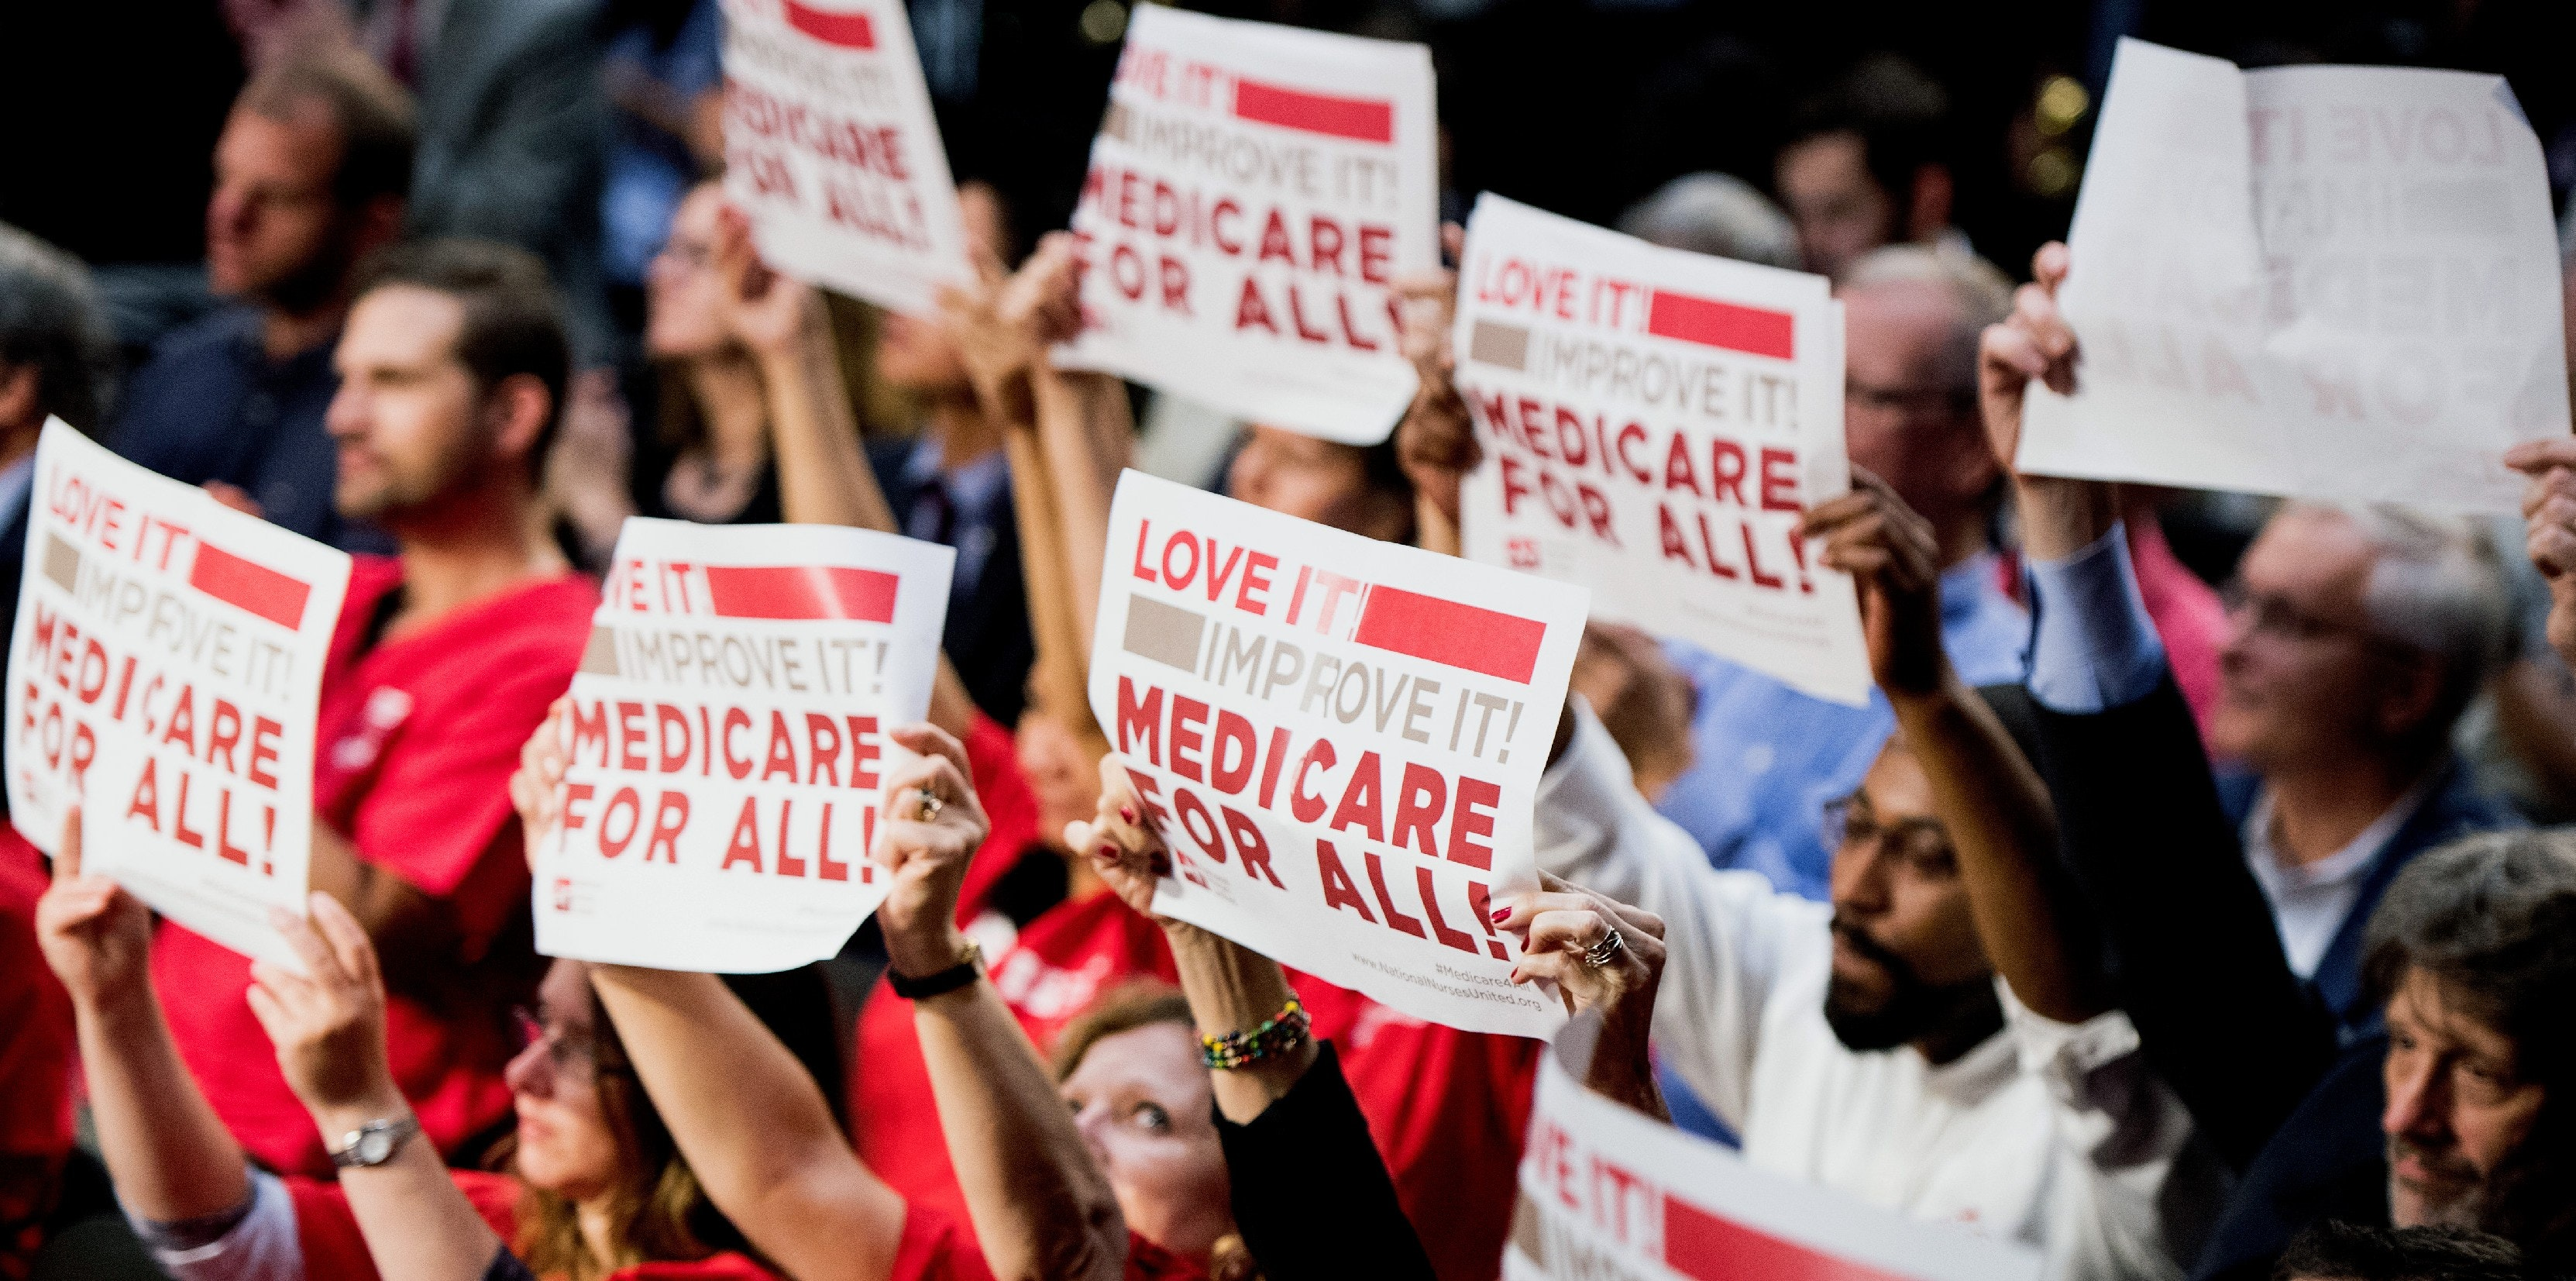 Medicaid and all of us recommendations